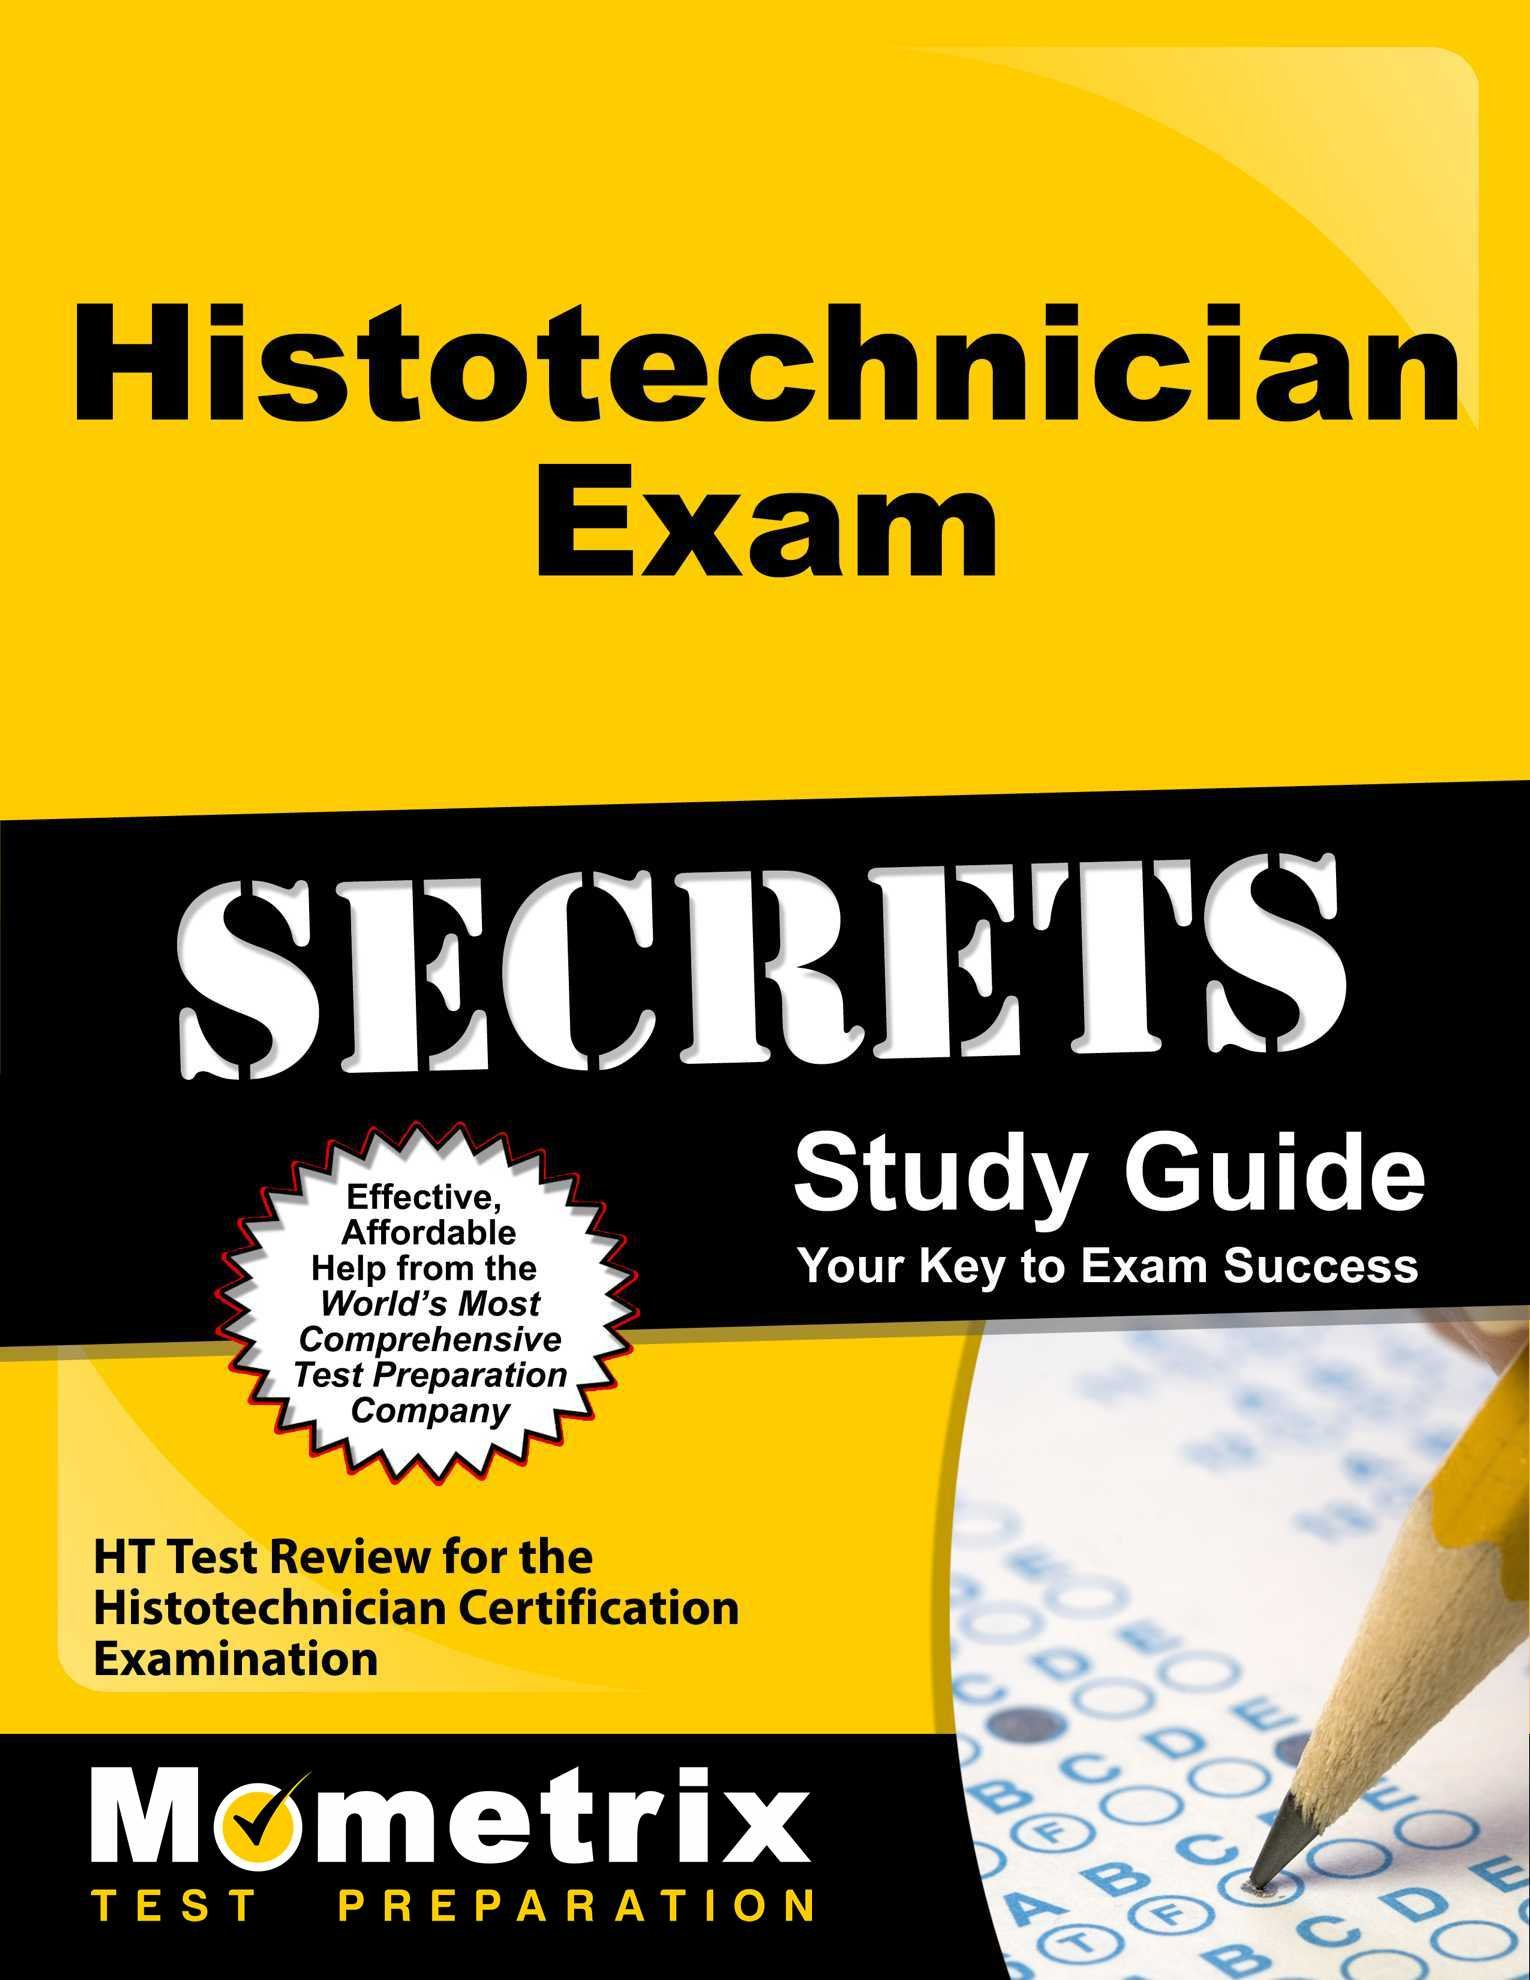 Histotechnician Exam Secrets Study Guide Ht Test Review For The